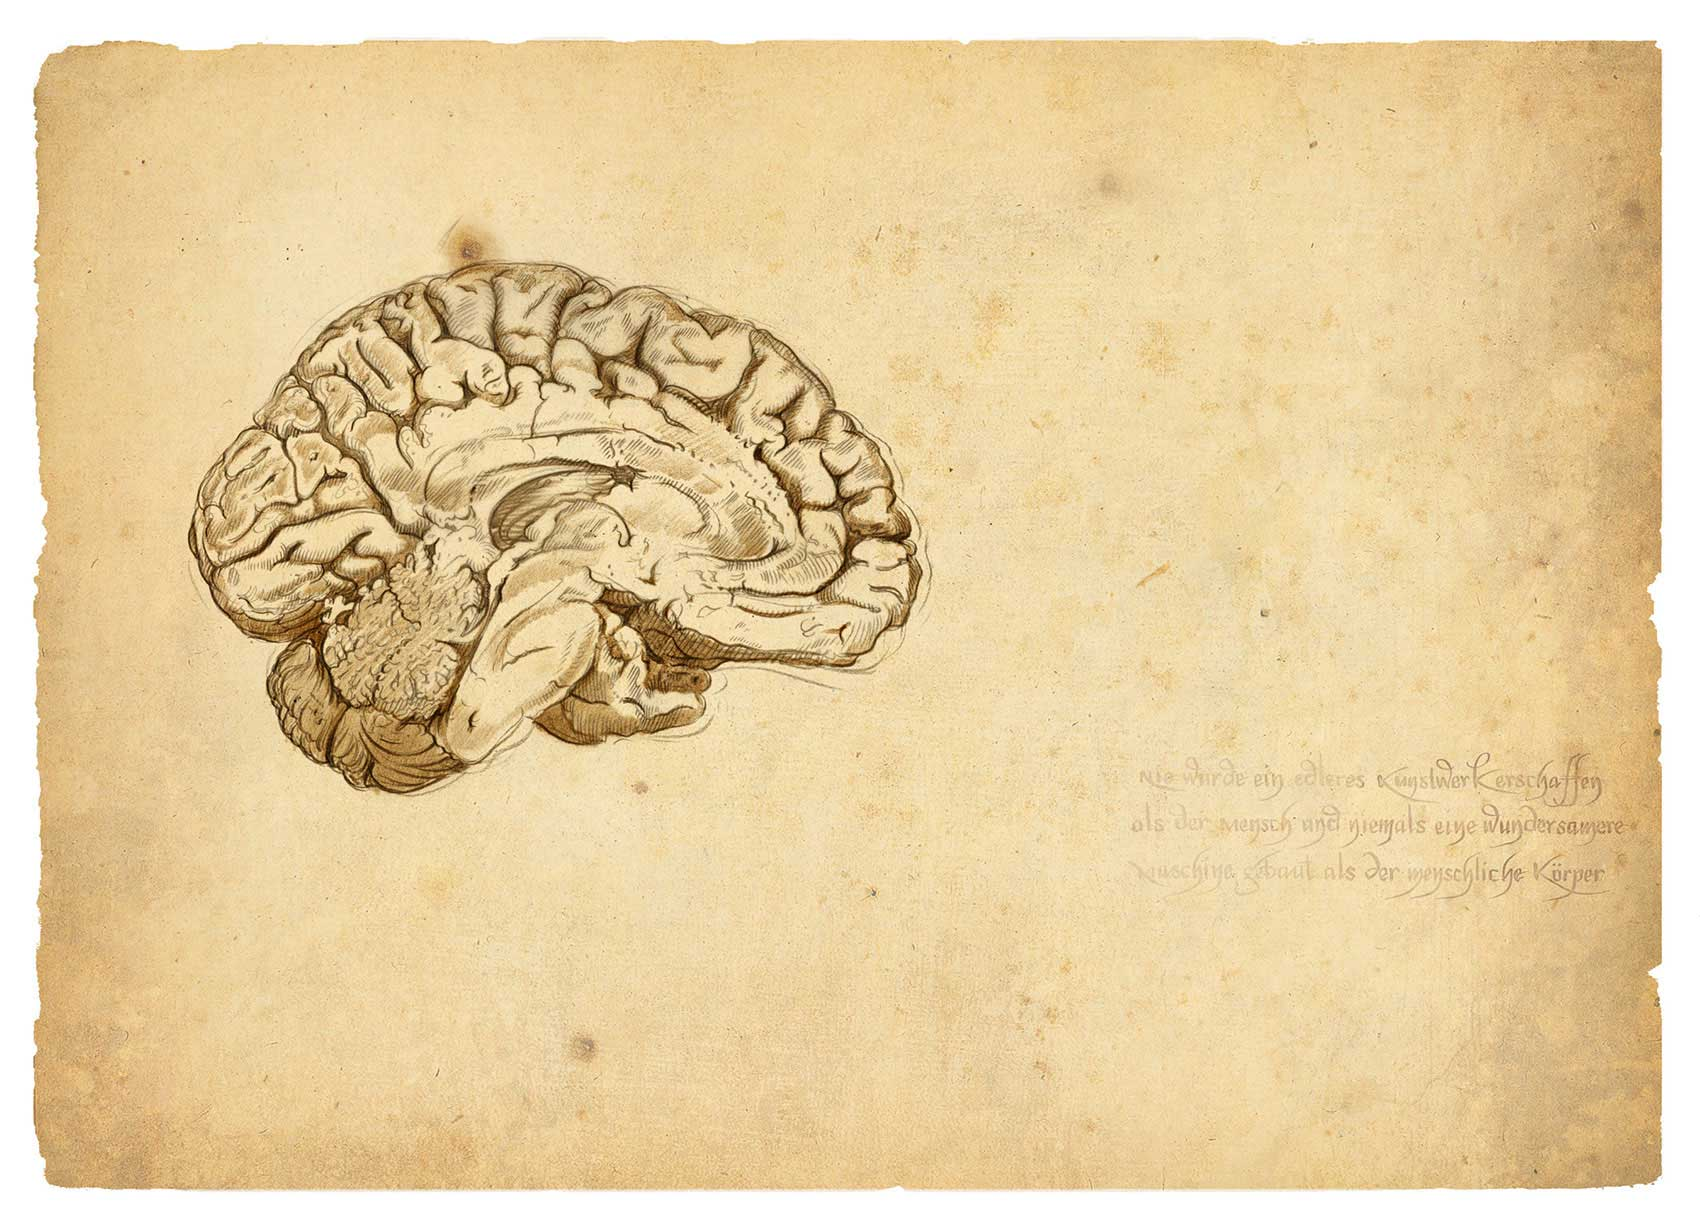 illustration-Retro_DaVinci-style-brain-cutaway-Pastiche